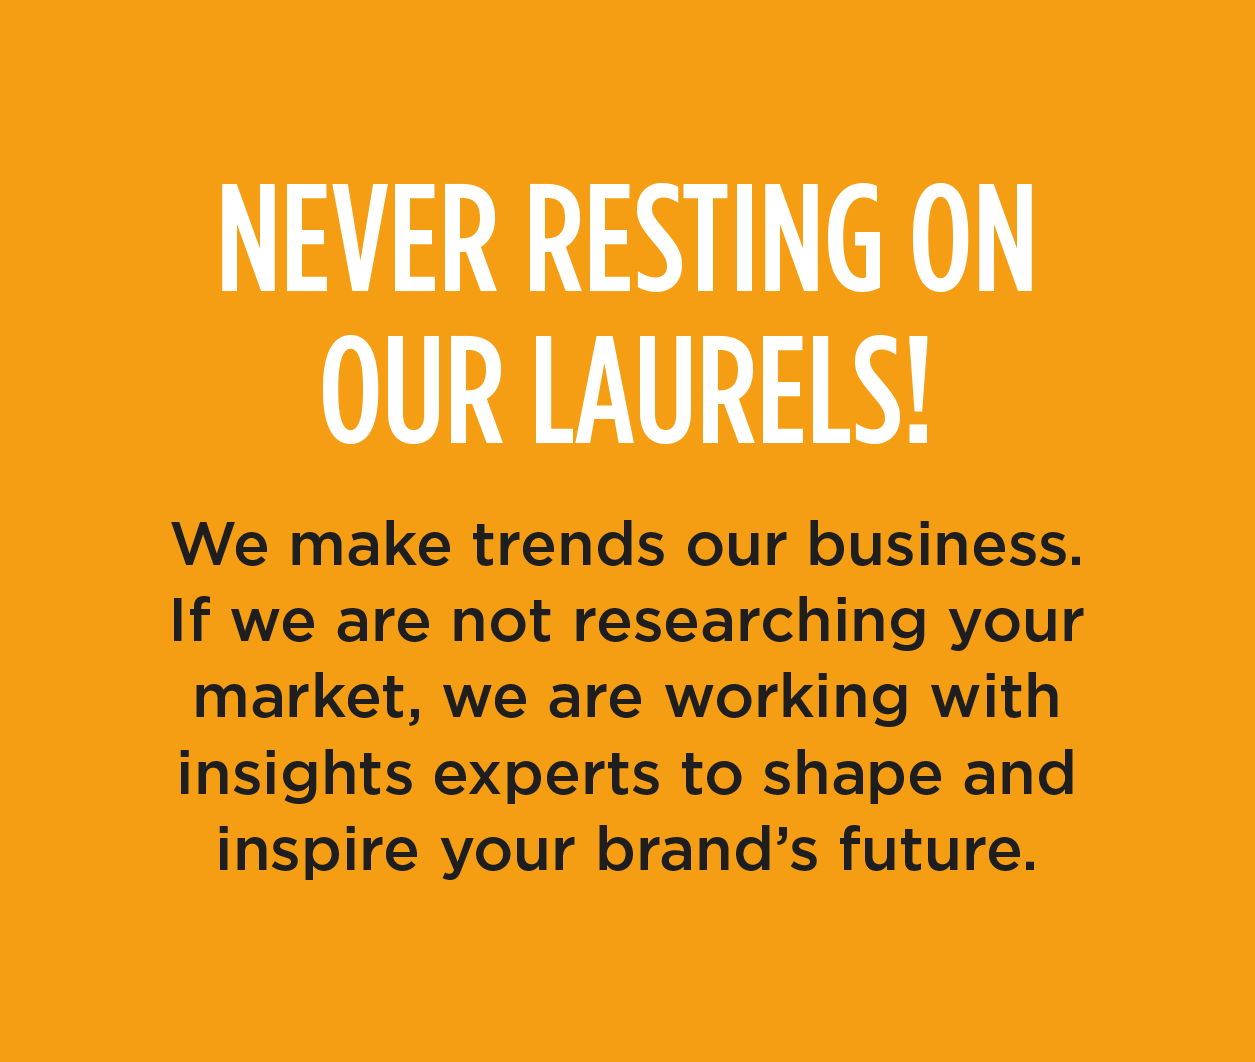 NEVER RESTING ON OUR LAURELS! - We make trends our business. If we are not researching your market, we are working with insights experts to shape and inspire your brand's future.